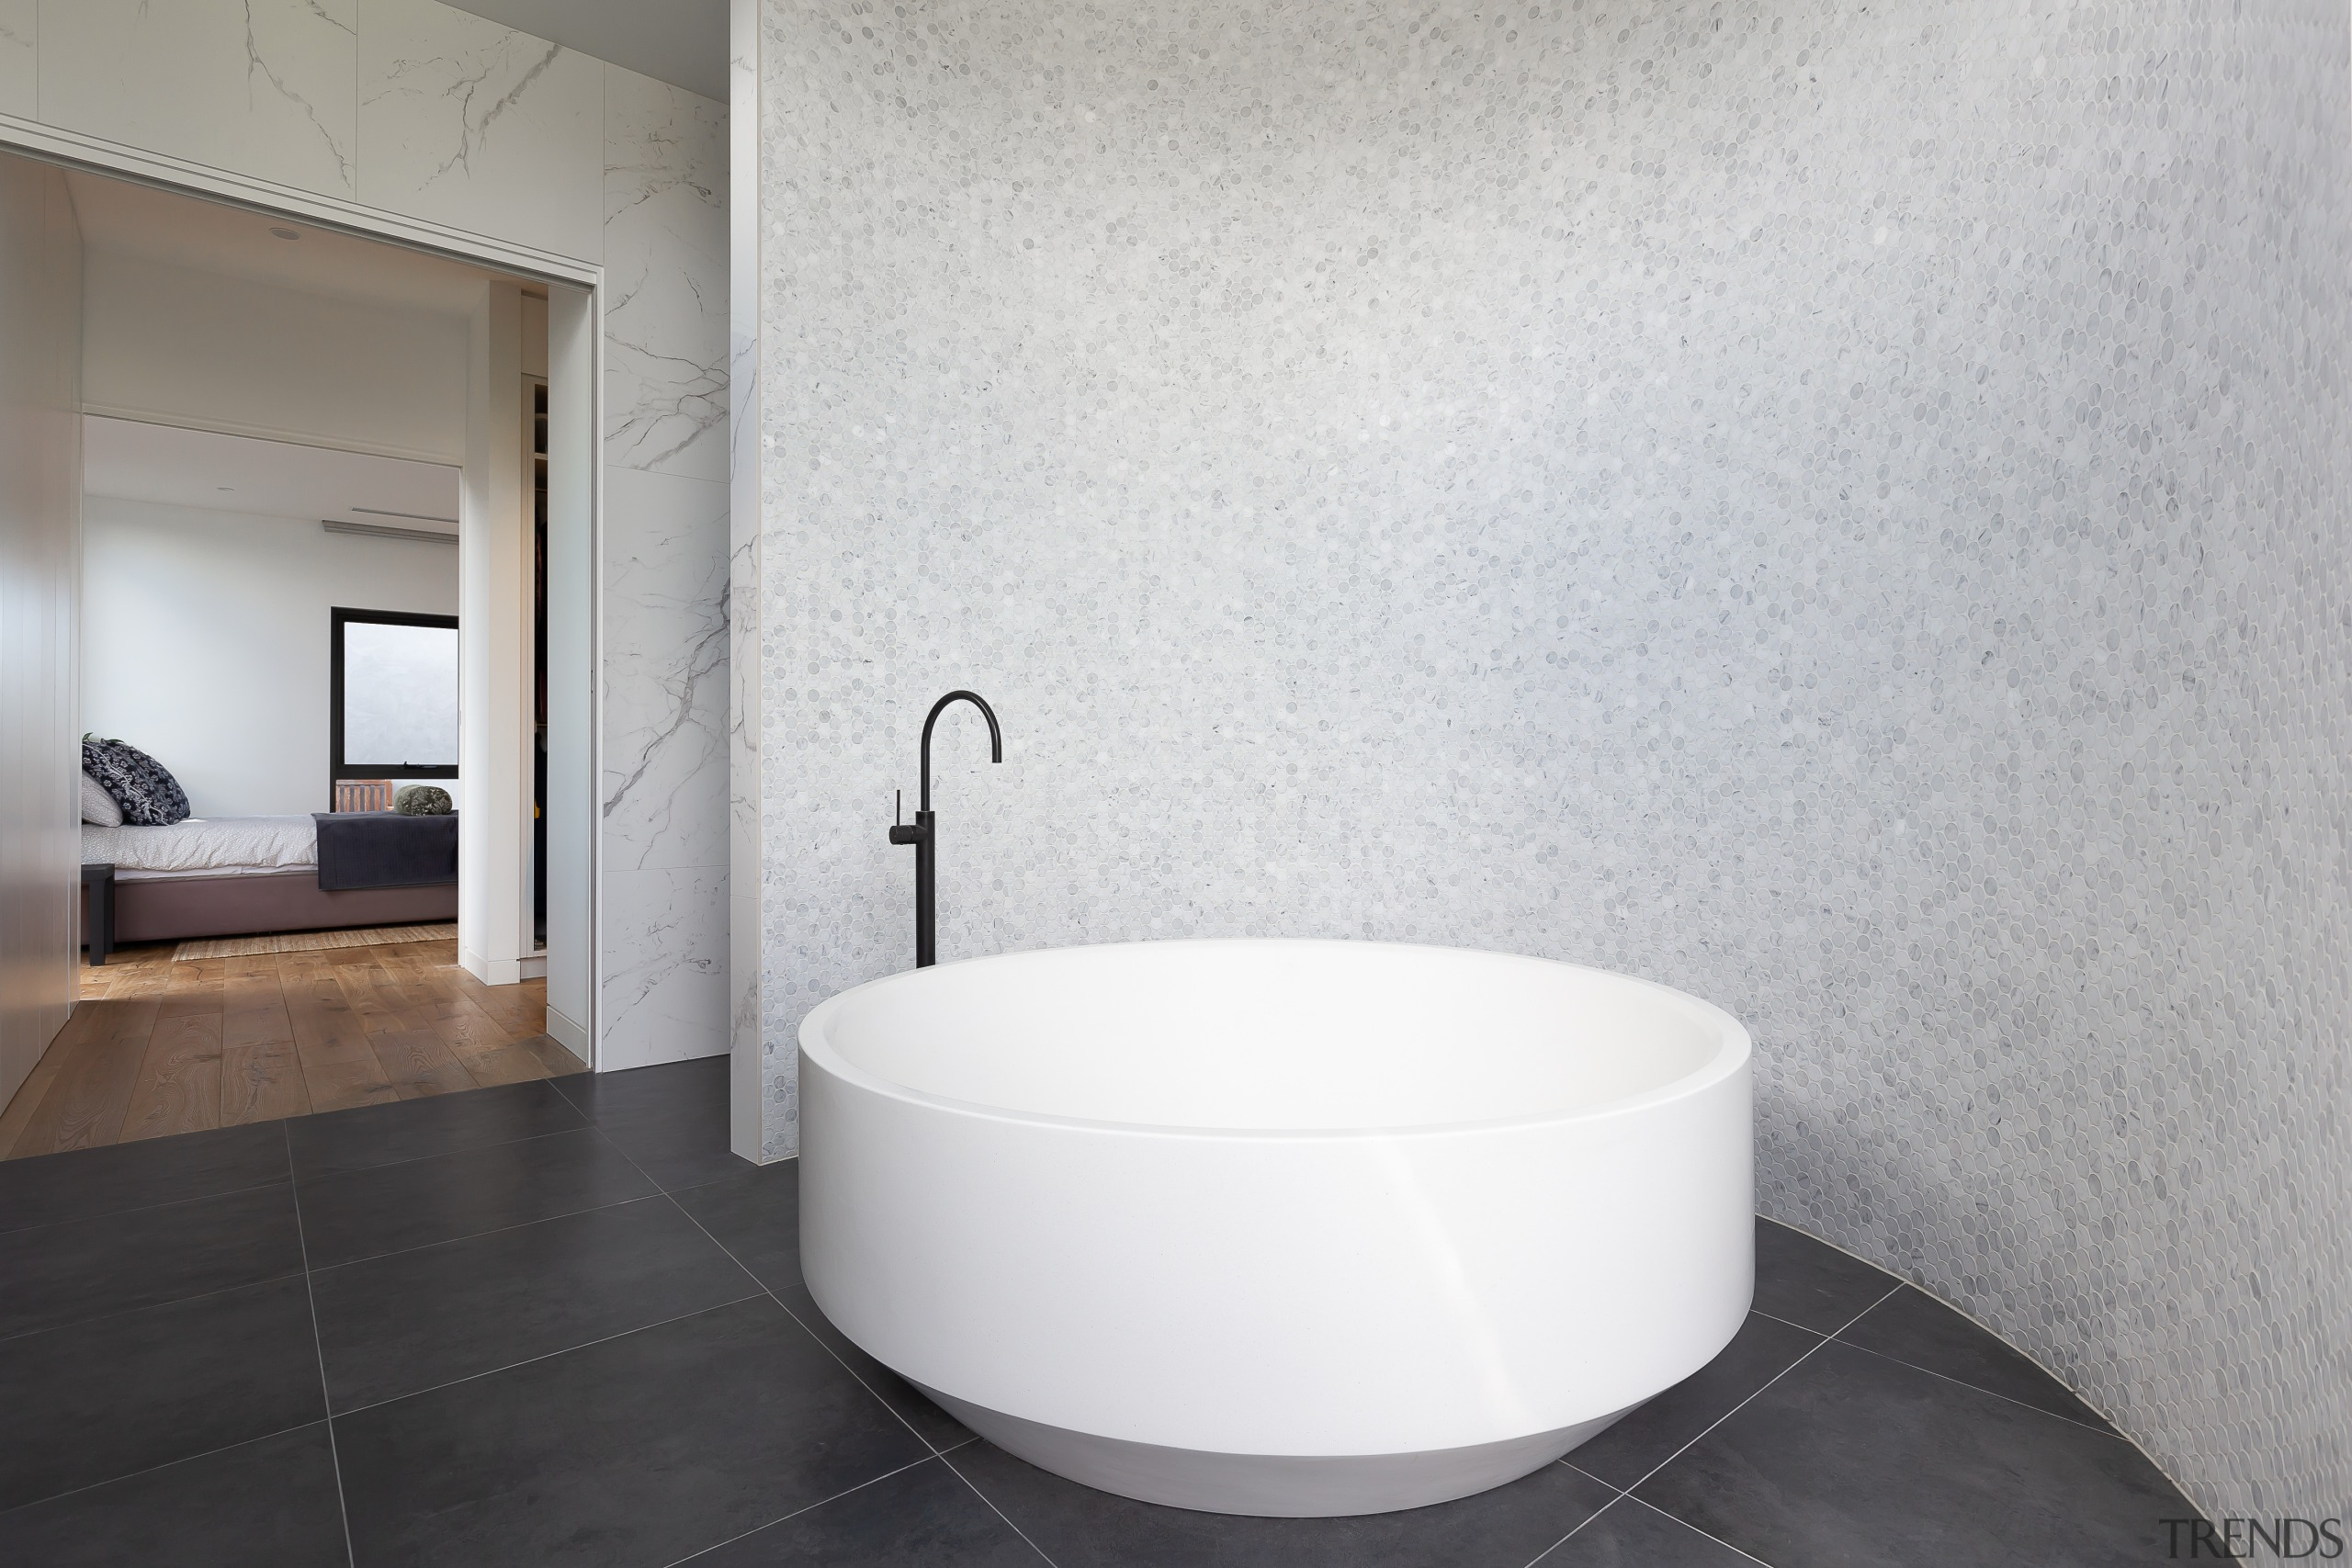 The feature curved wall in this master ensuite gray, white